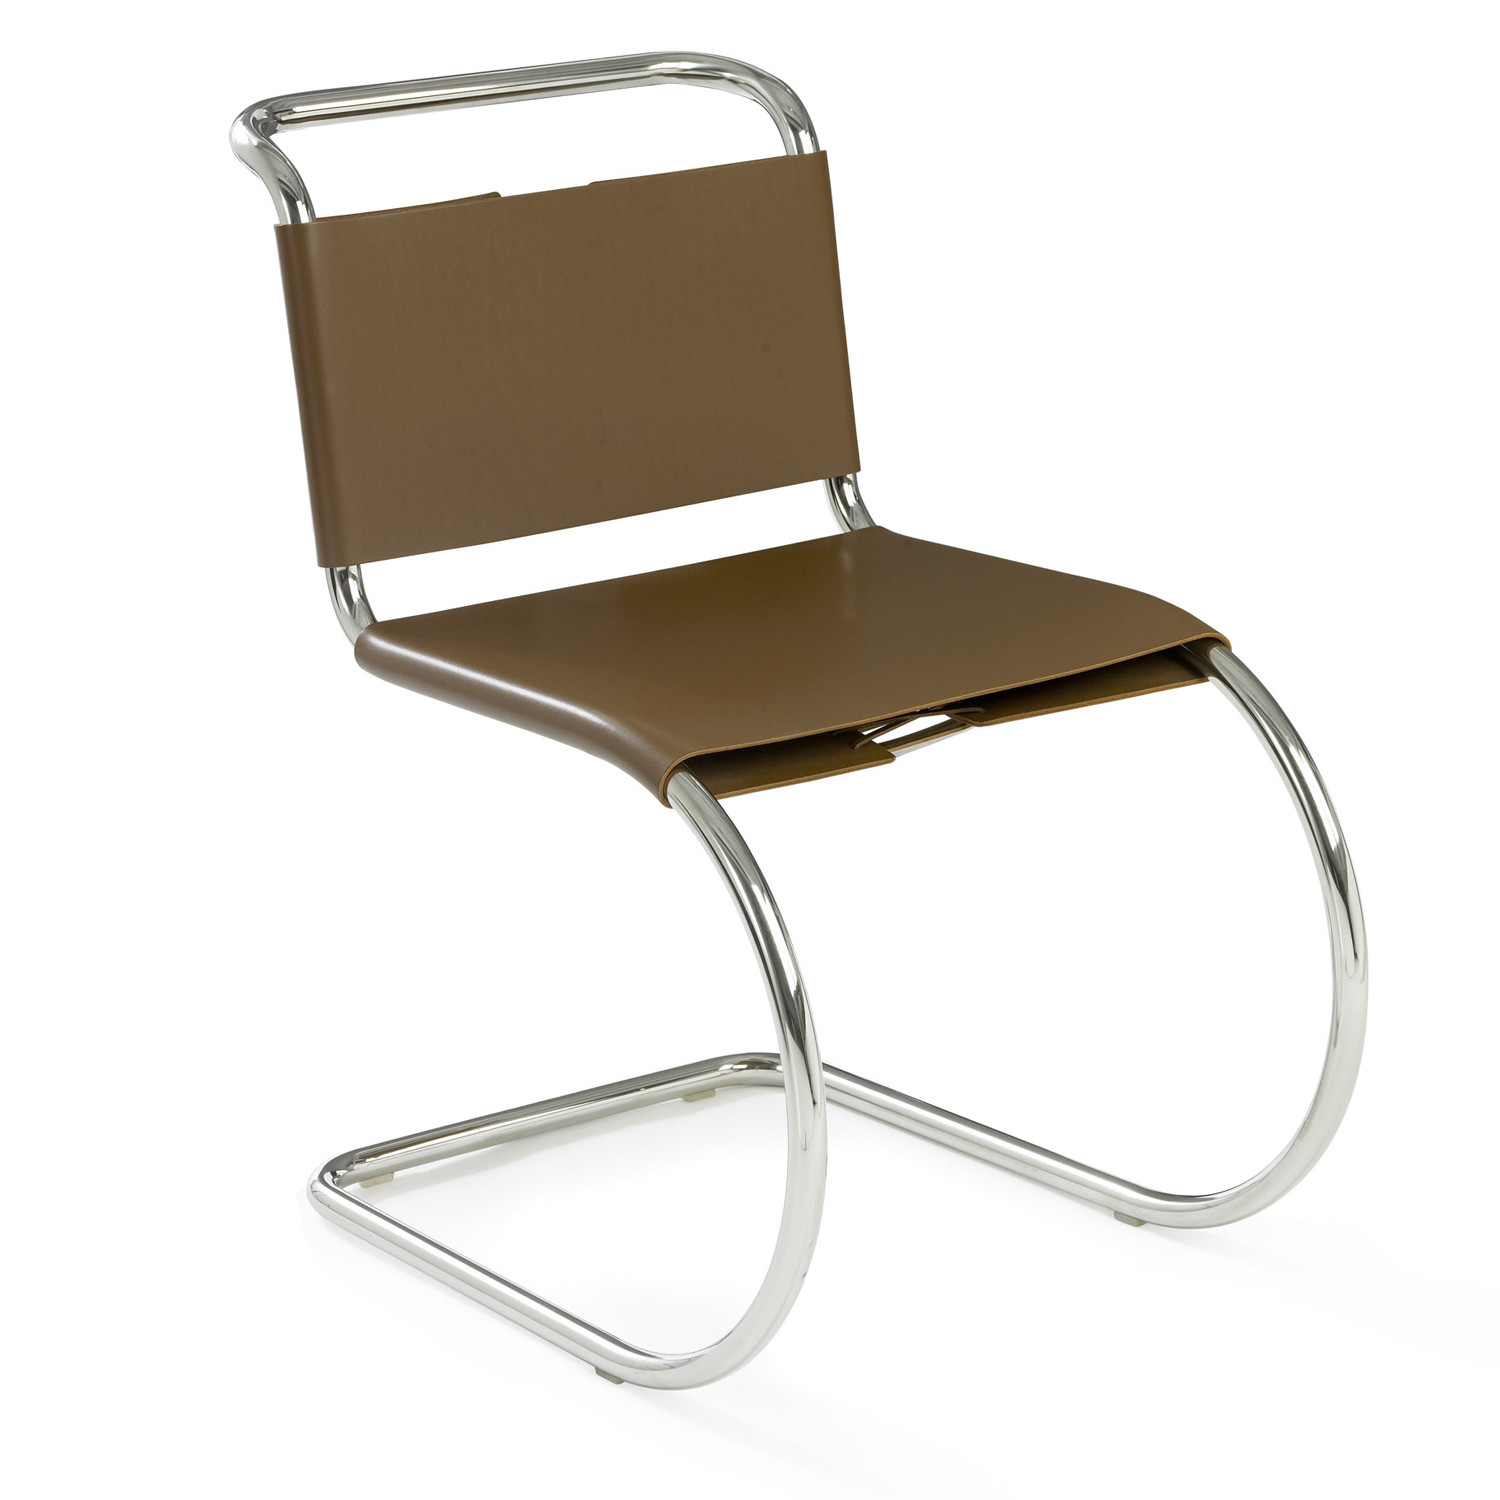 MR Chair without arms